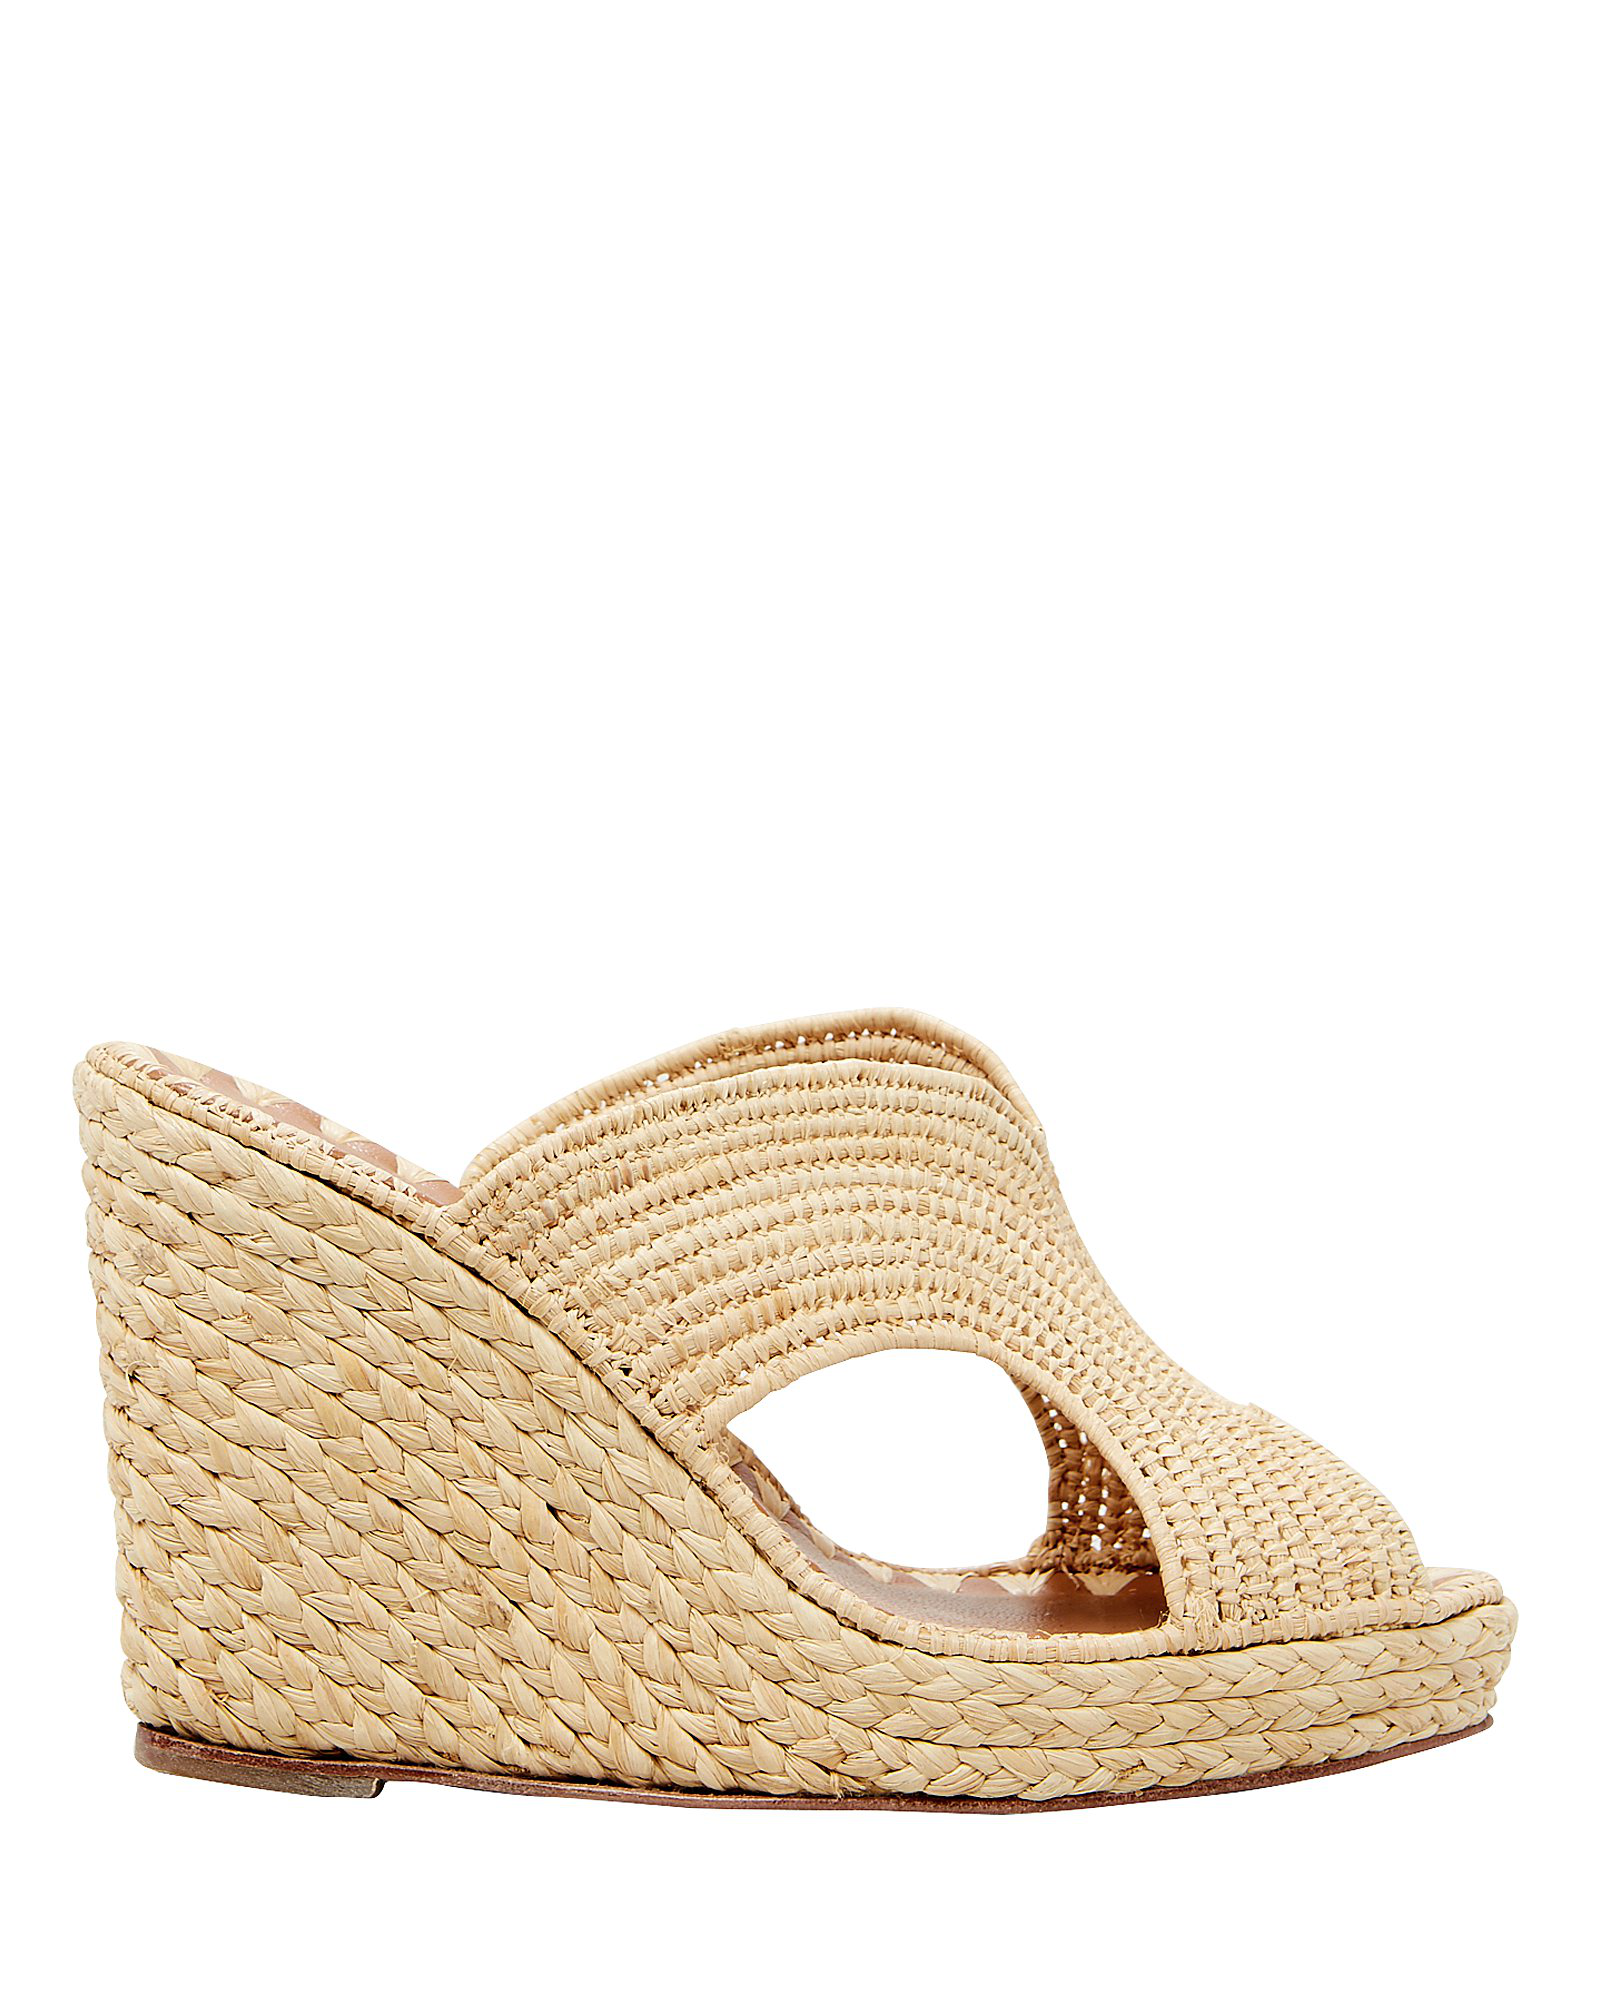 Carrie Forbes Lina Wedge Mules In Natural